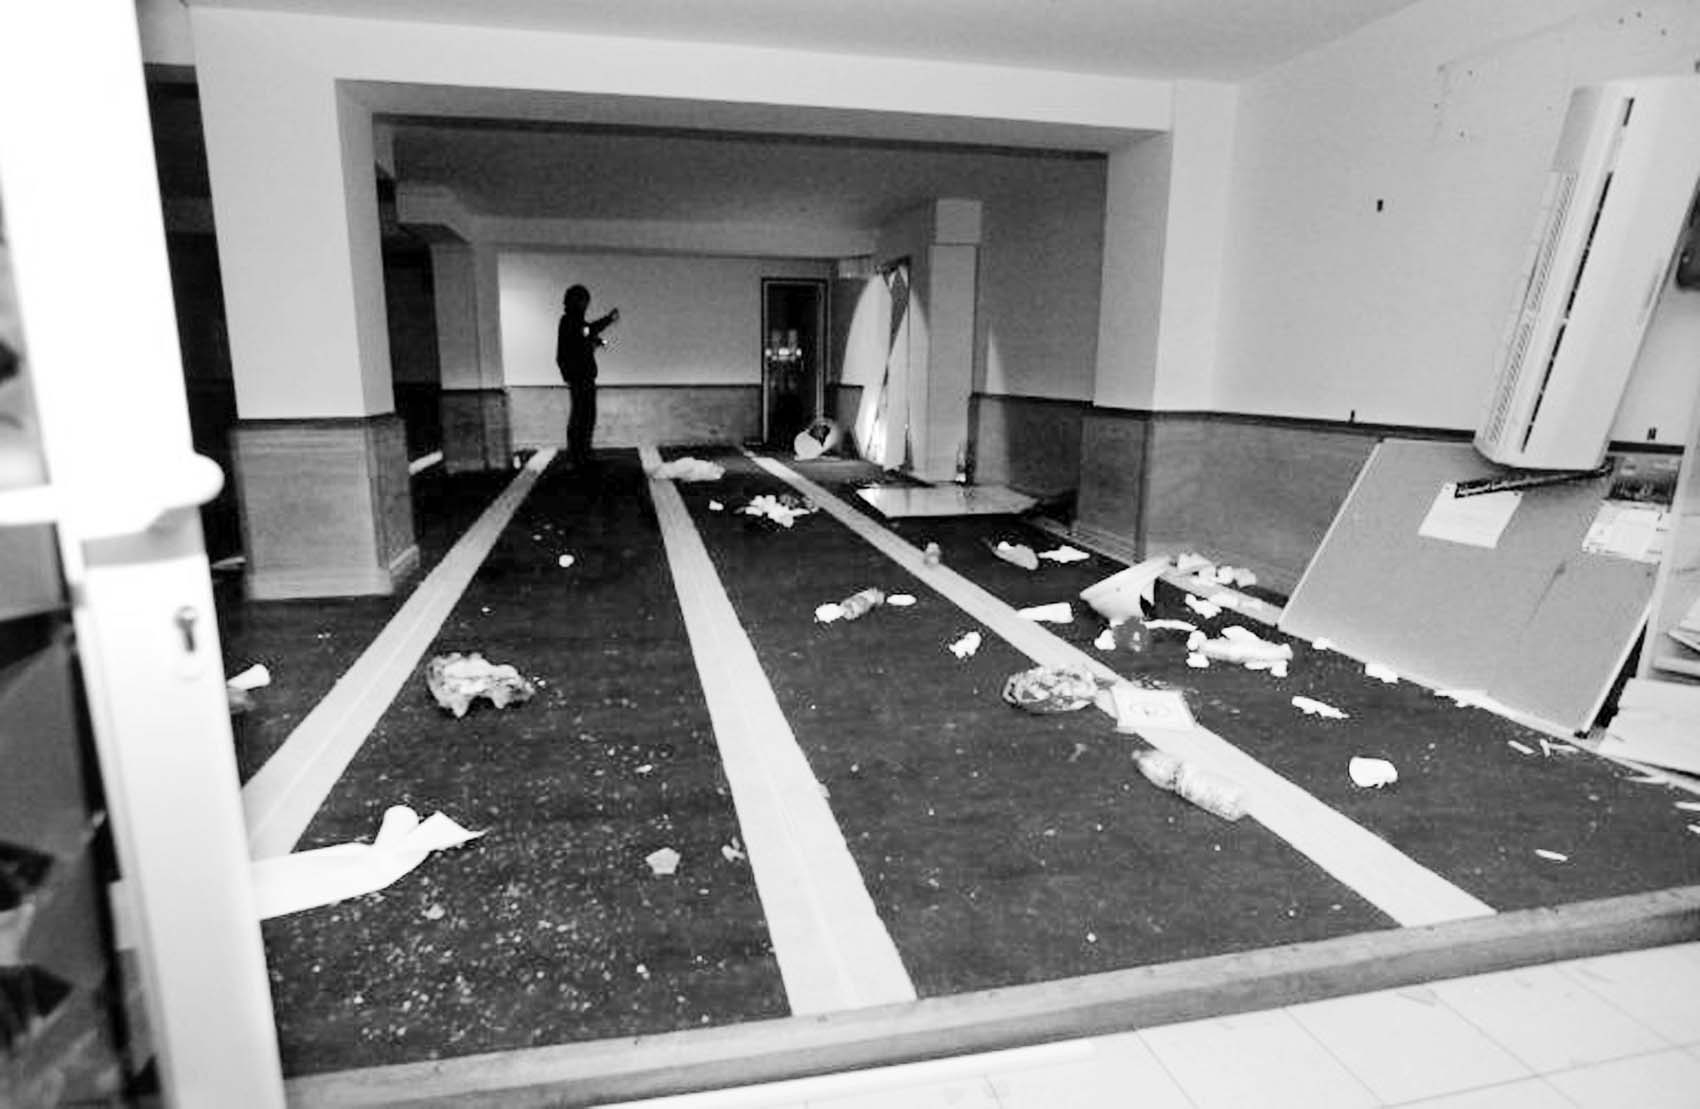 Muslim prayer hall ravaged by Corsican mob on Christmas Day